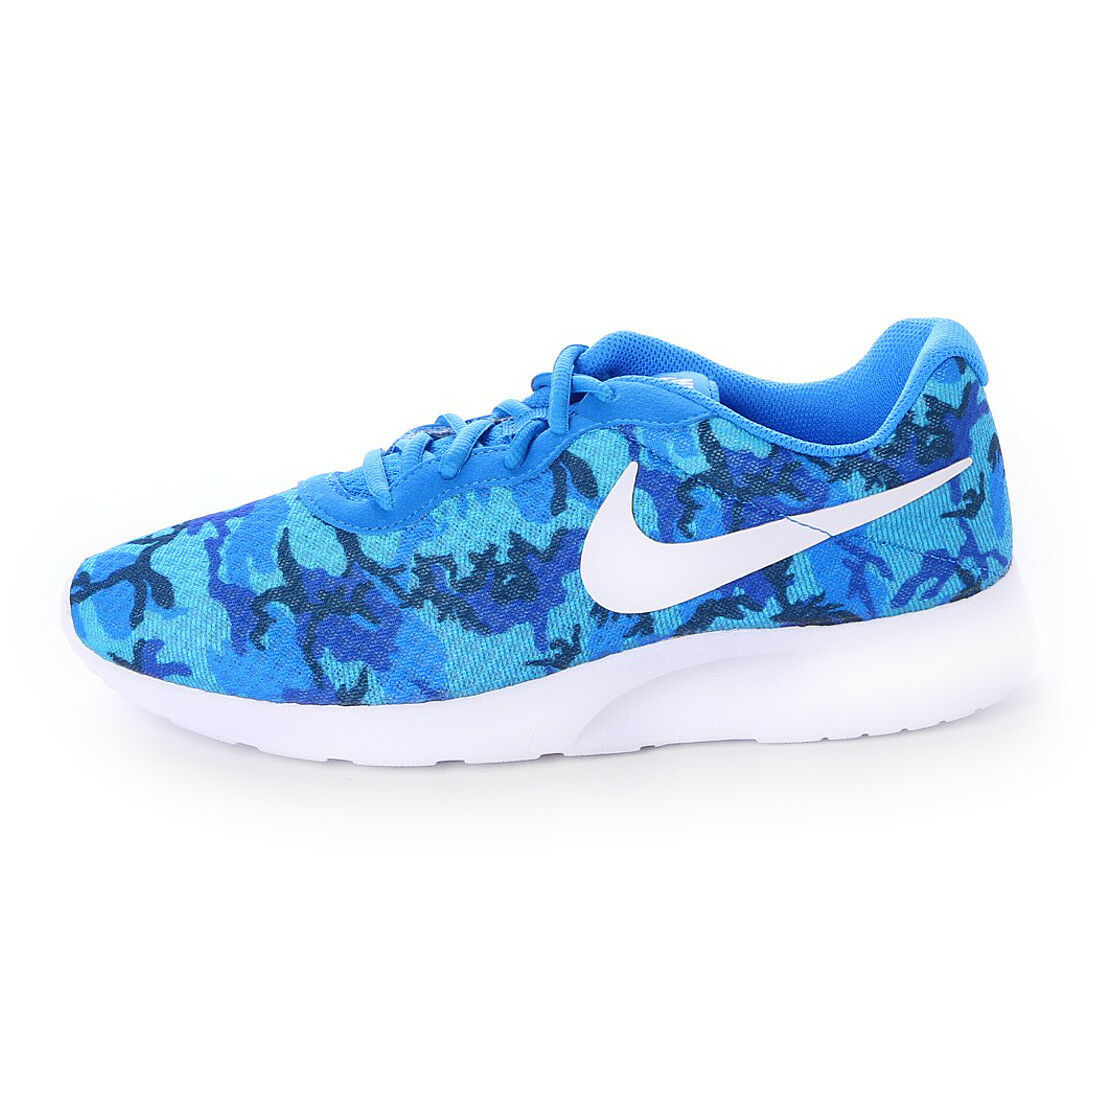 Special limited time NIKE TANJUN PRINT SNEAKERS MEN SHOES PHOTO BLUE 819893-414 SIZE 11 NEW